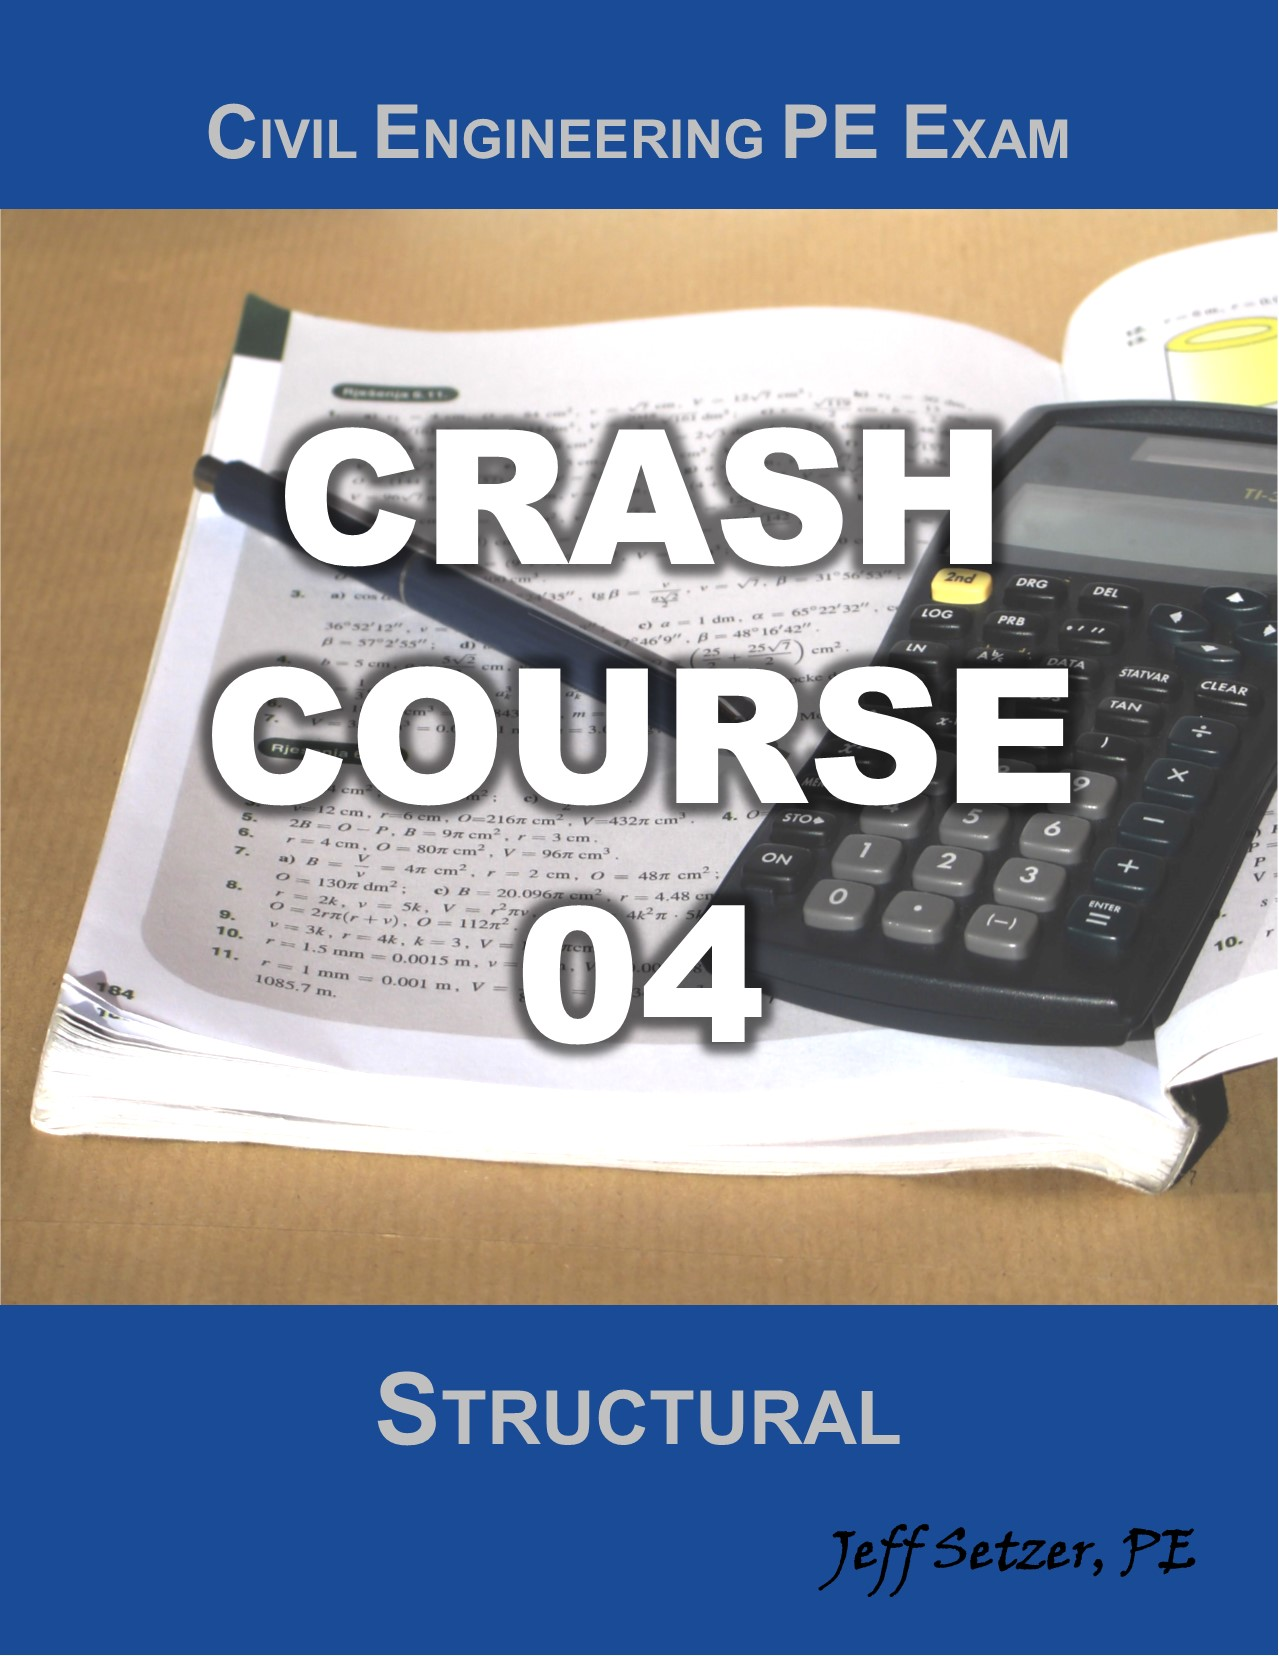 Civil Engineering Structural PE Exam Crash Course 04